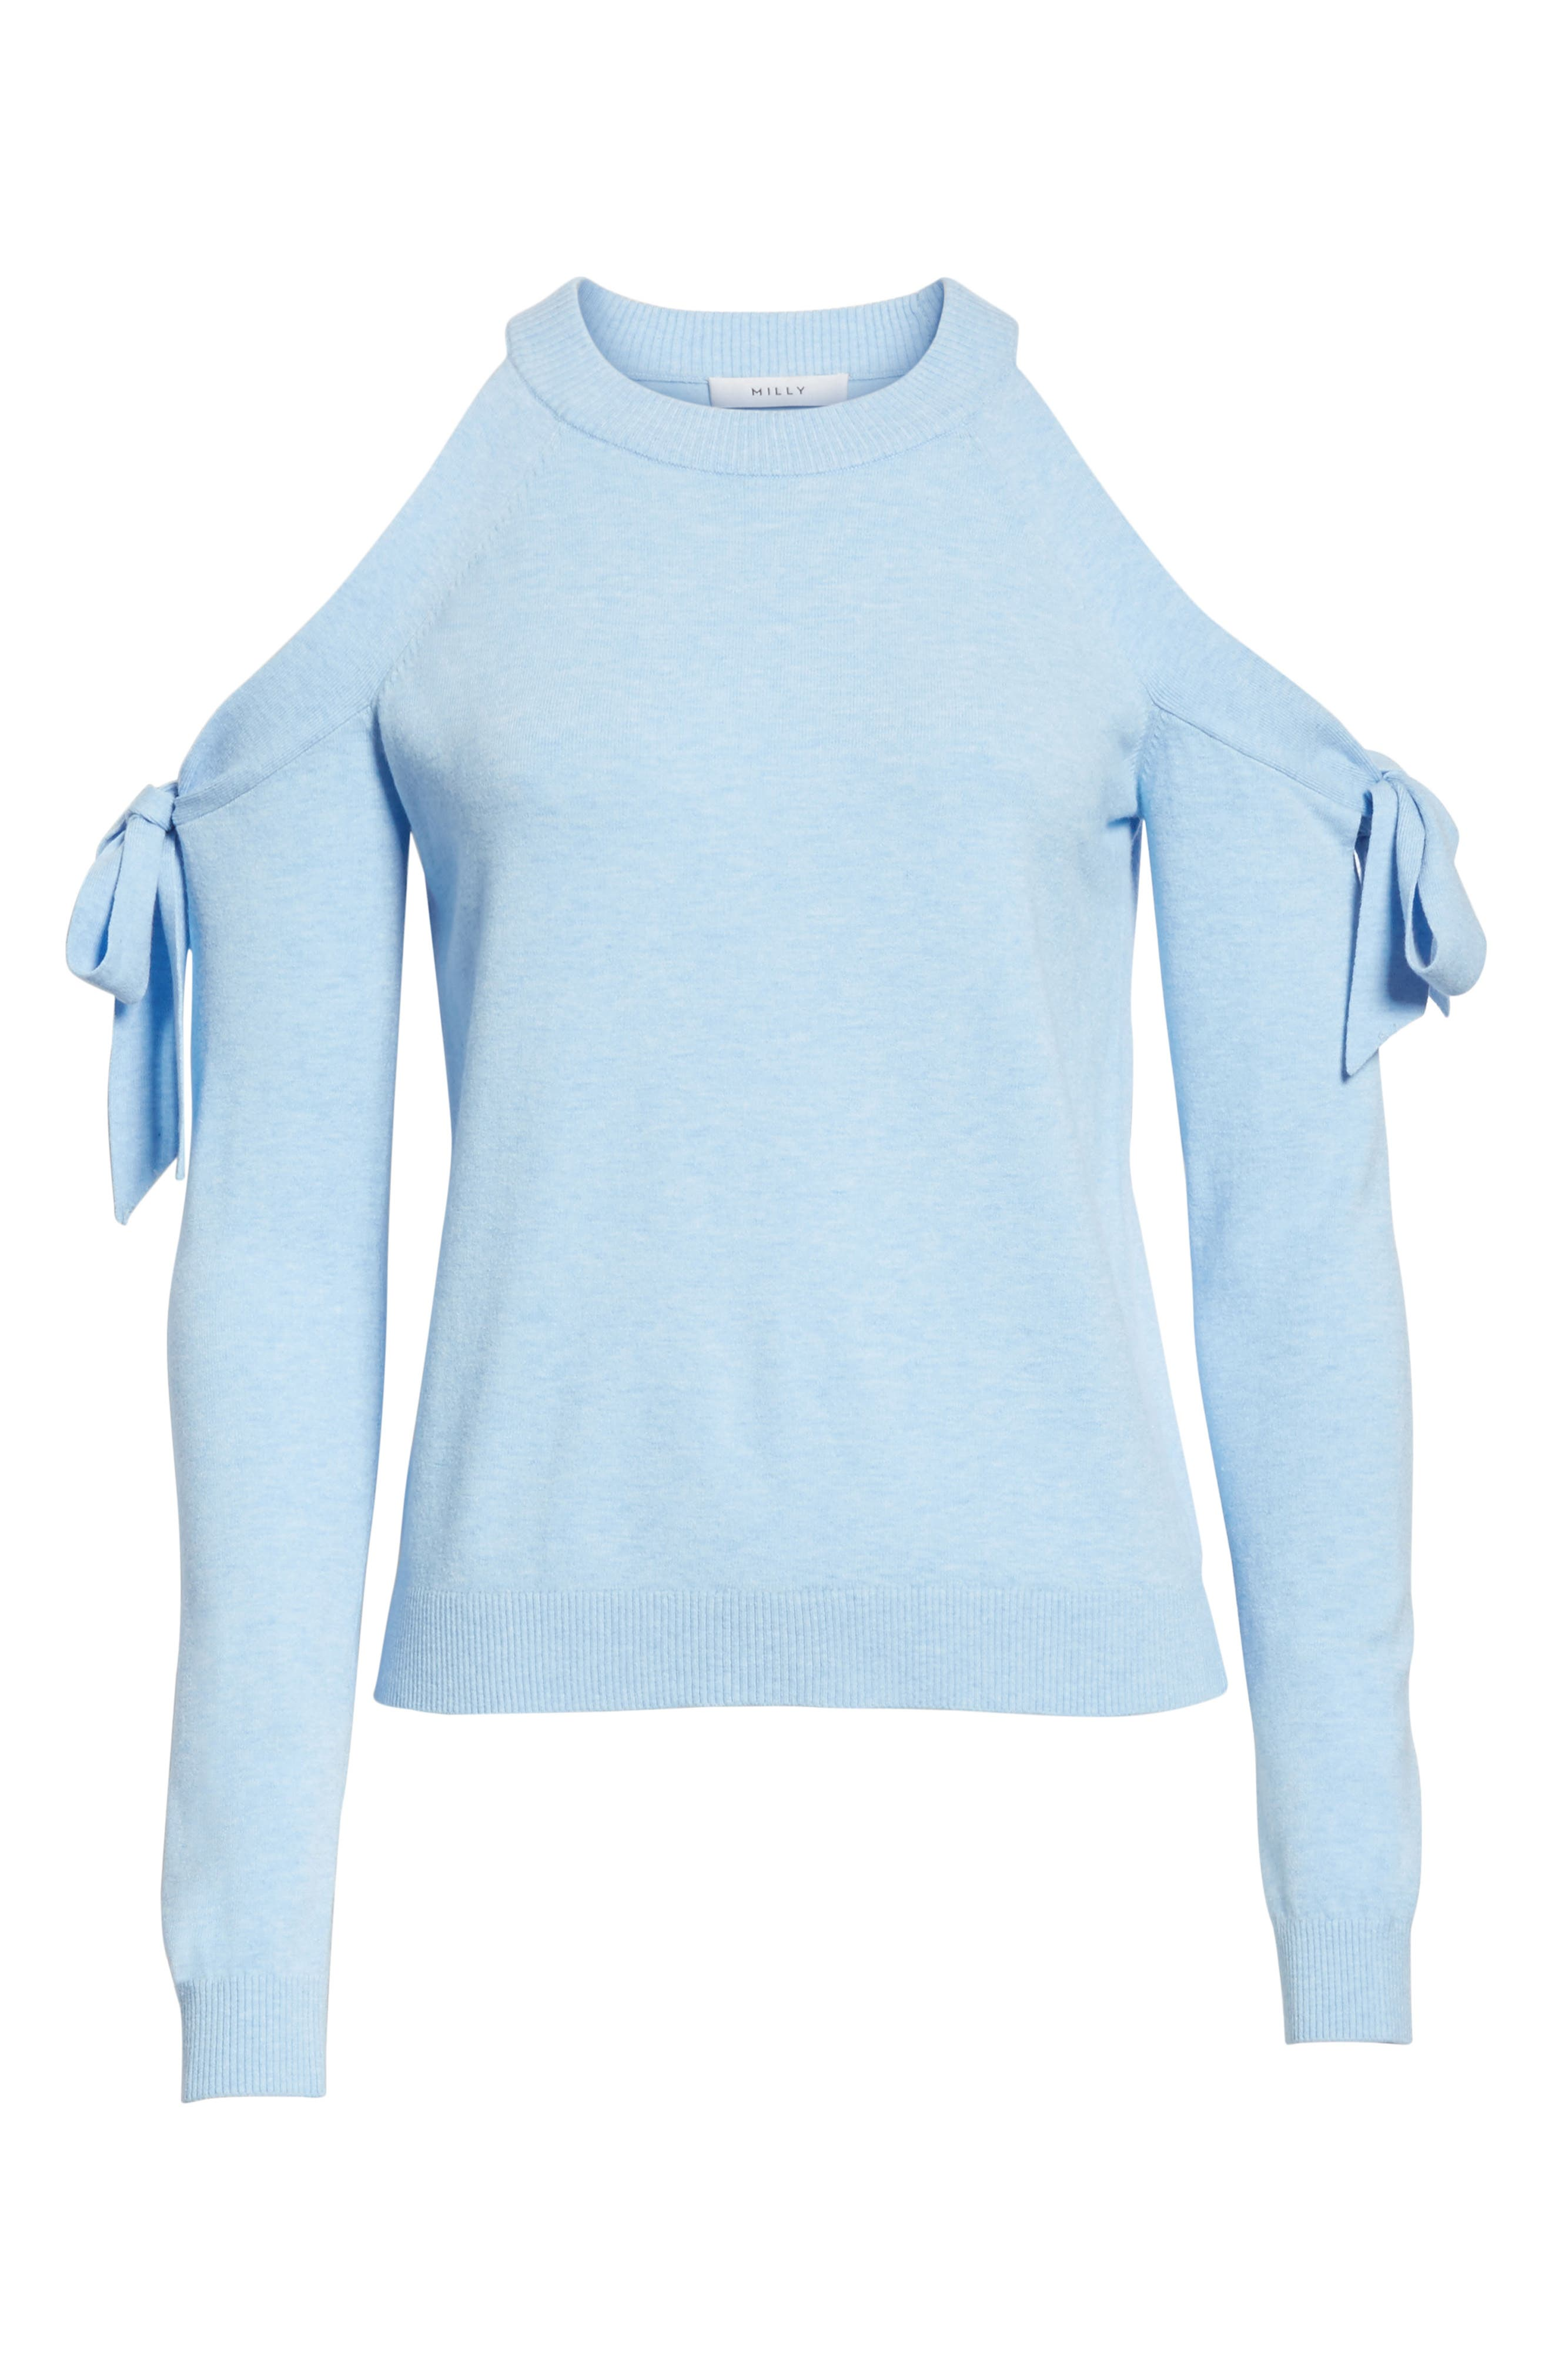 Cold Shoulder Tie Sleeve Sweater,                             Alternate thumbnail 6, color,                             Chambray